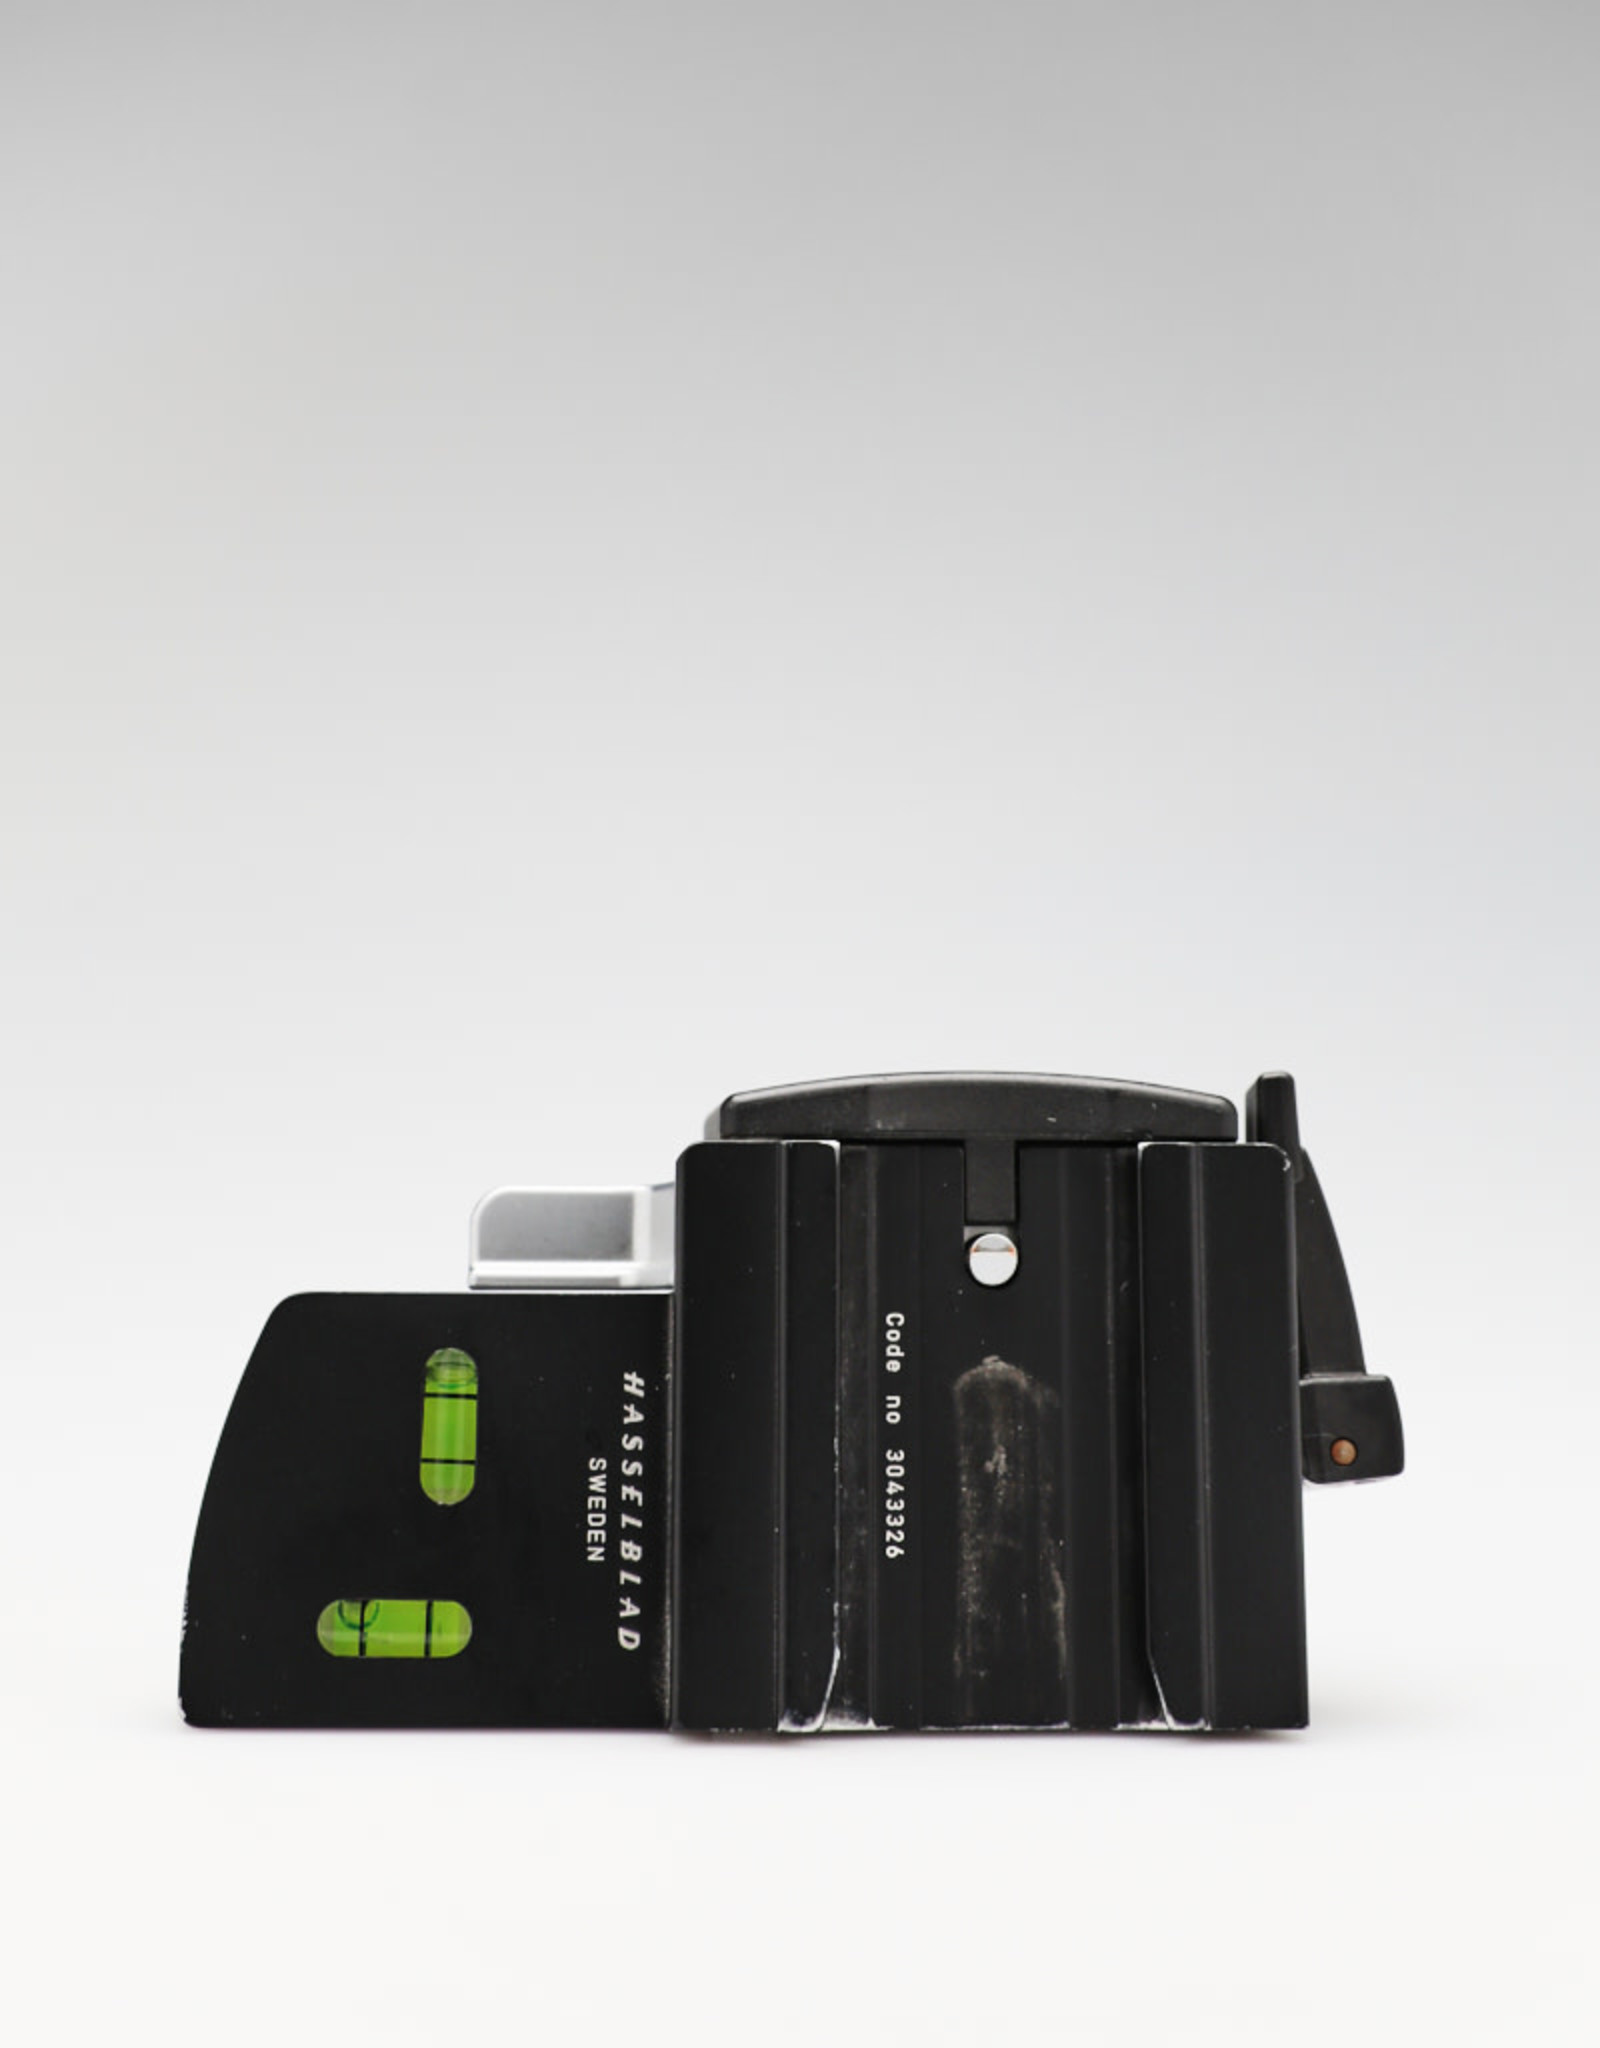 USED  Hasselblad Tripod Quick Coupling